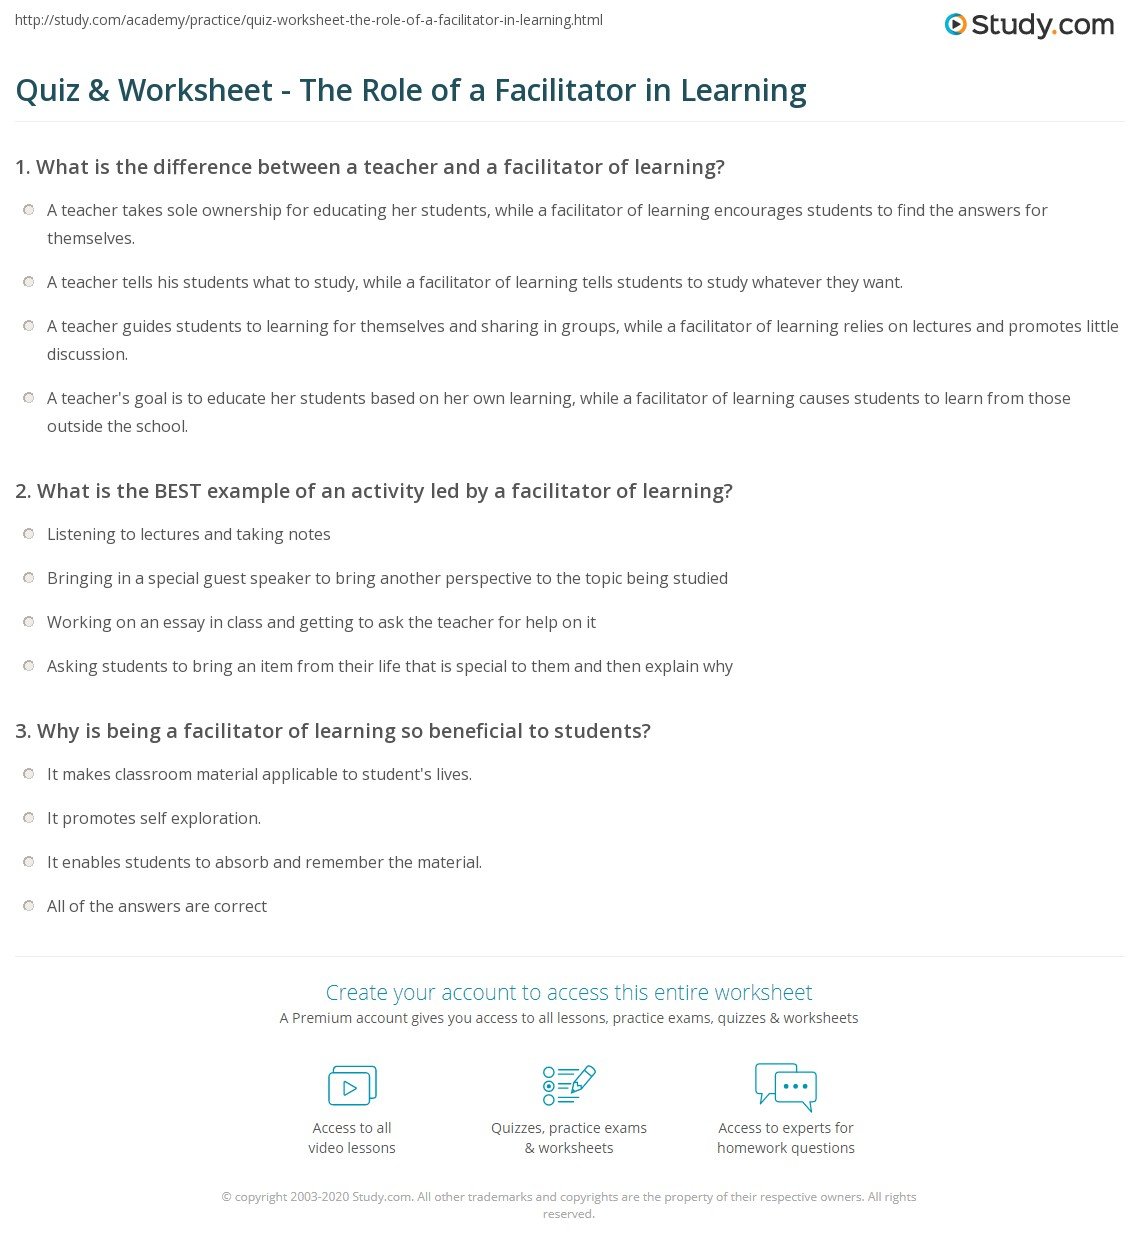 Quiz & Worksheet - The Role of a Facilitator in Learning   Study.com